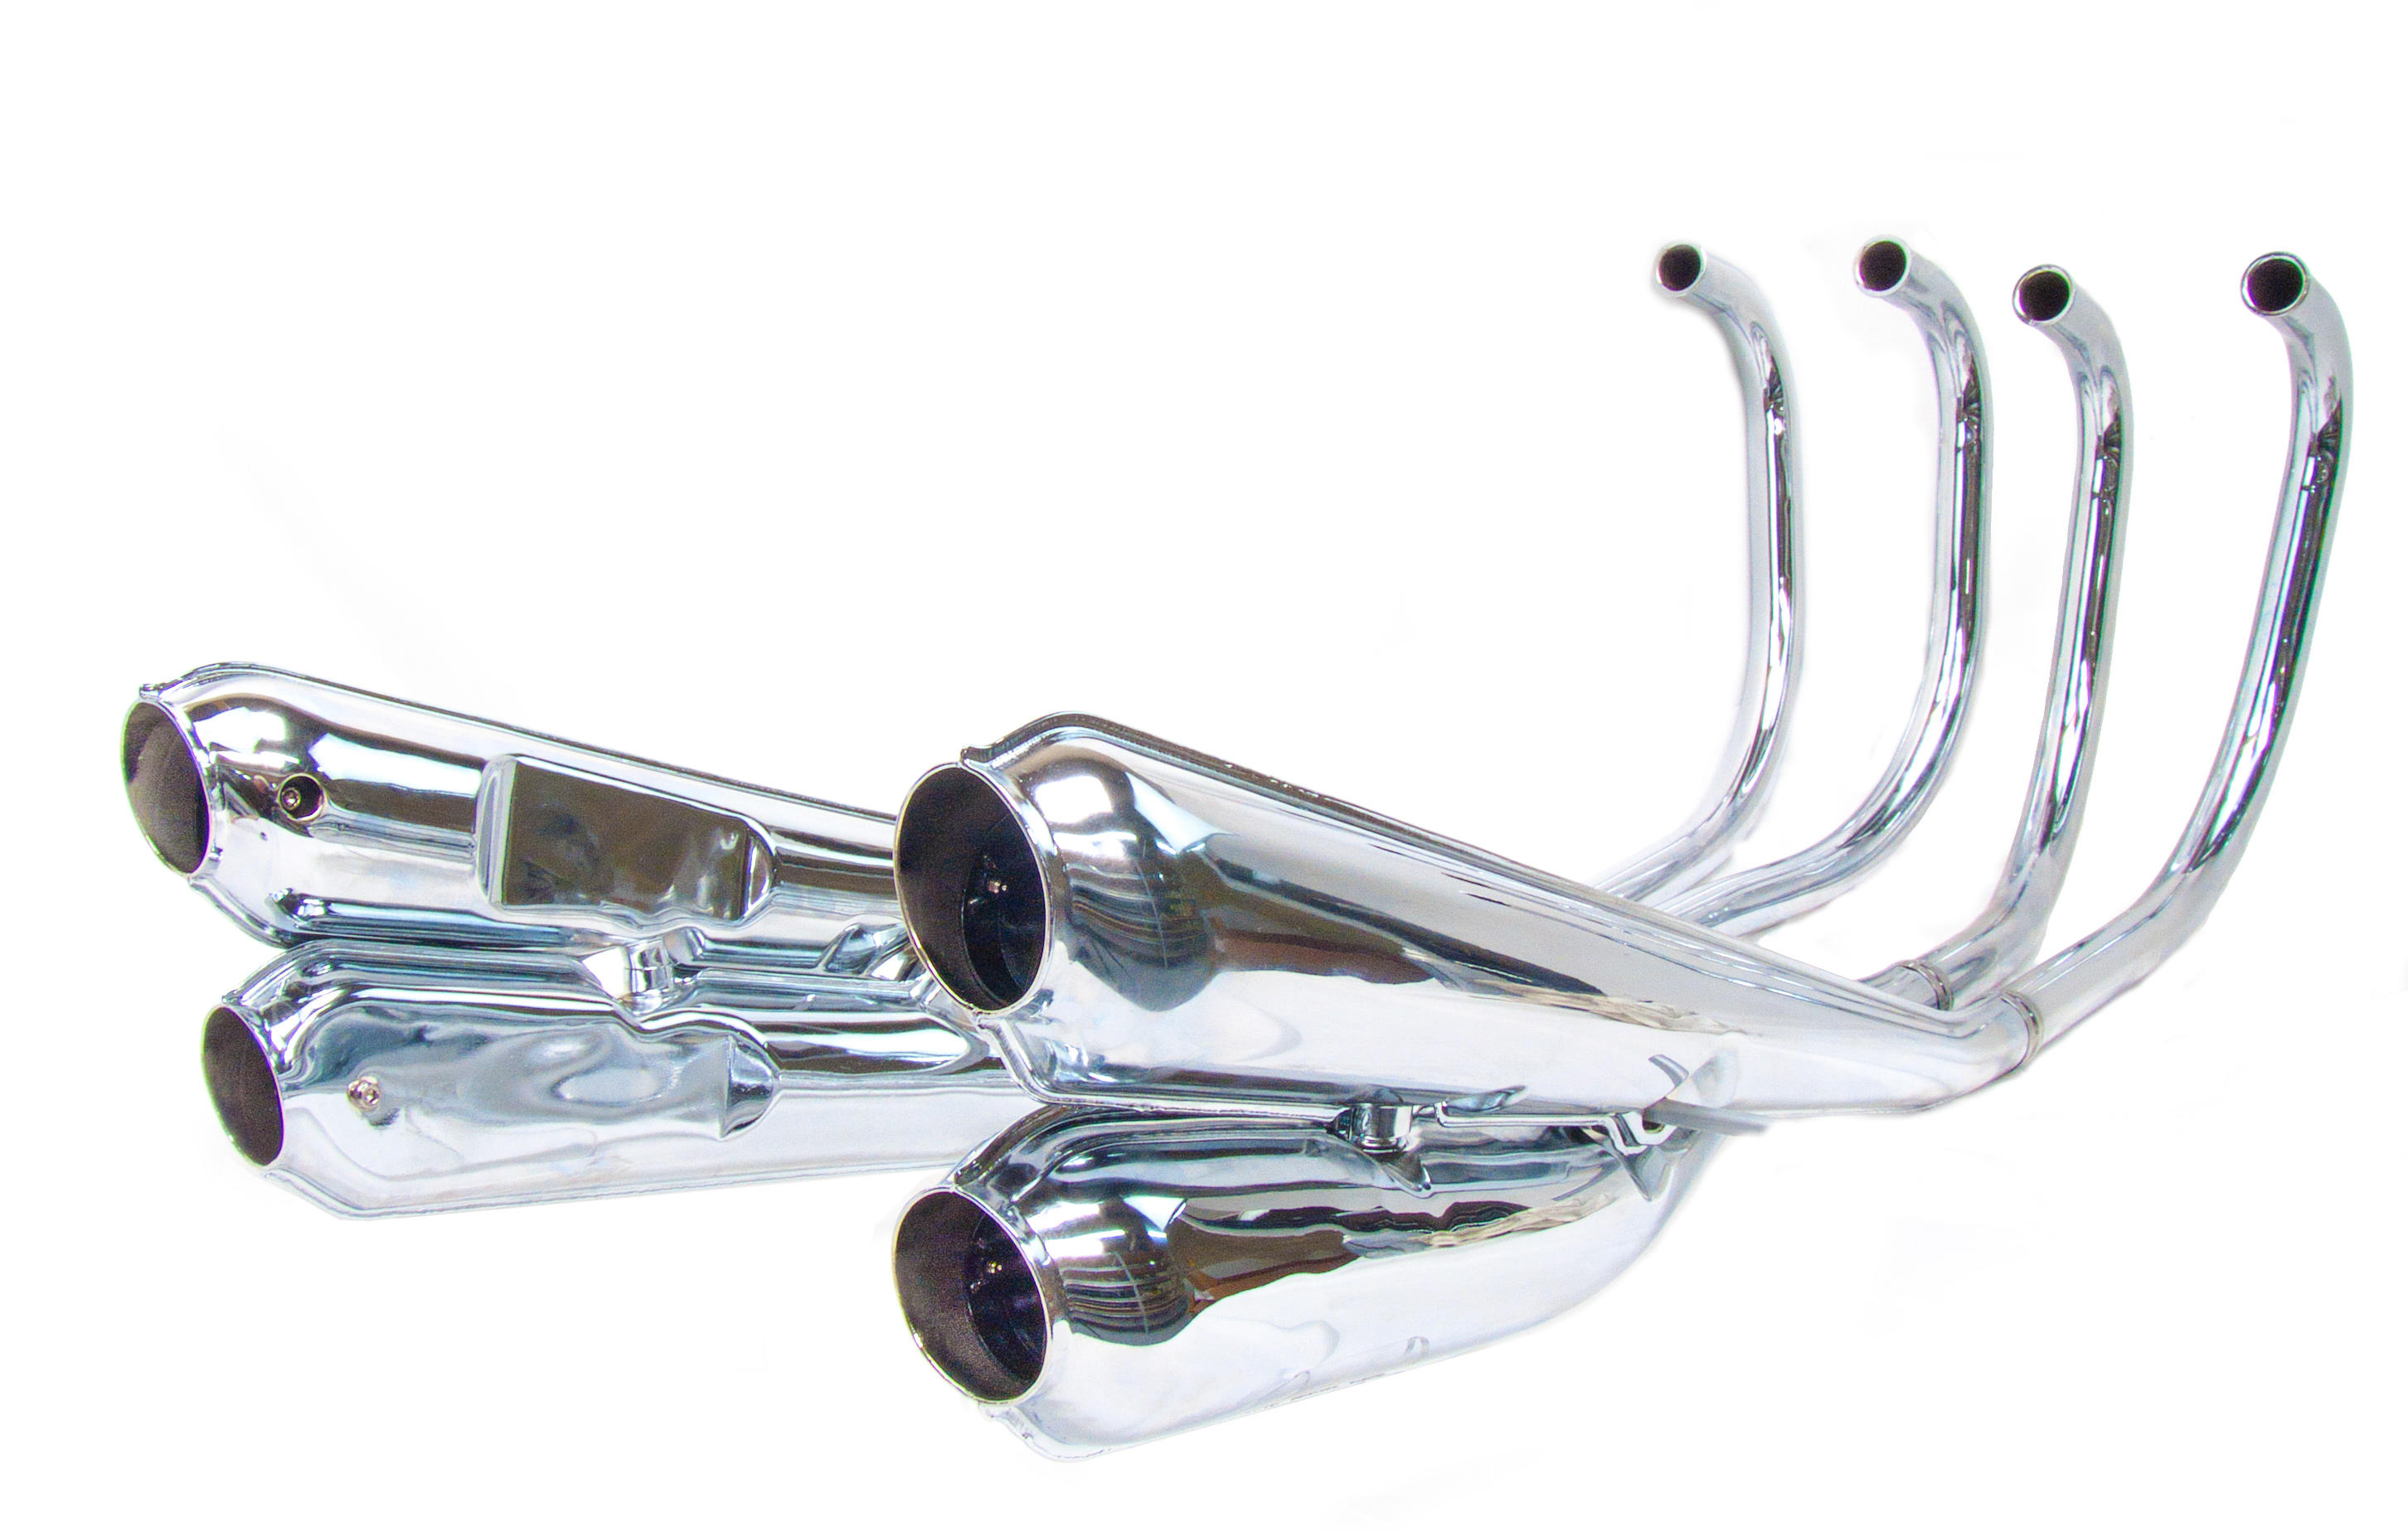 Kawasaki Z Aftermarket Exhausts